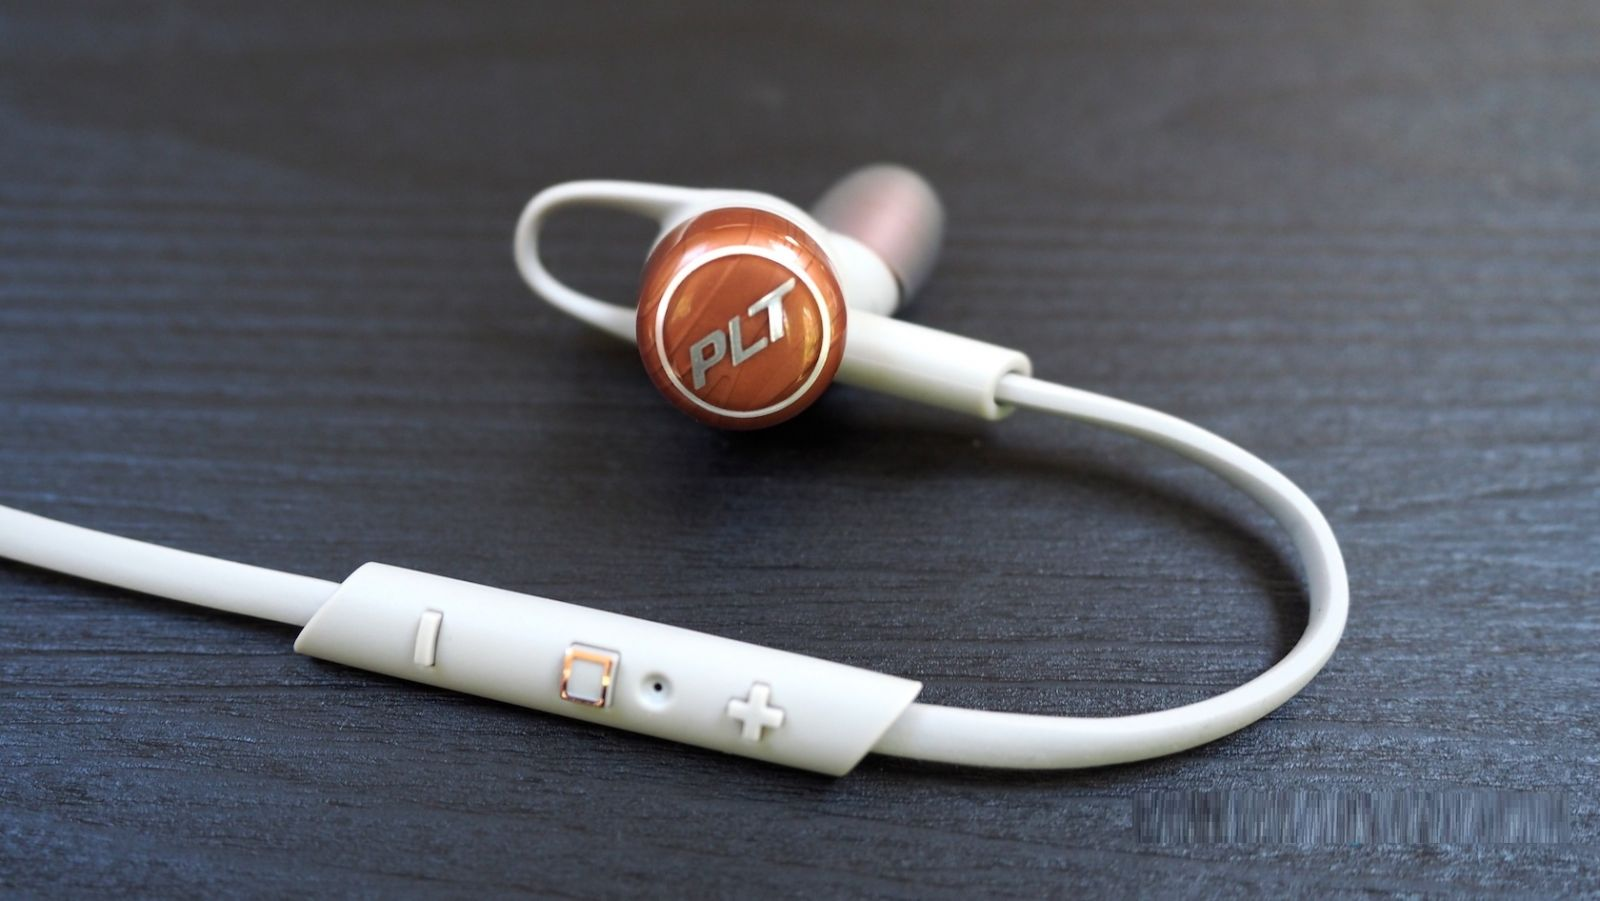 Tai nghe thoại Plantronics Backbeat Go3 With Case